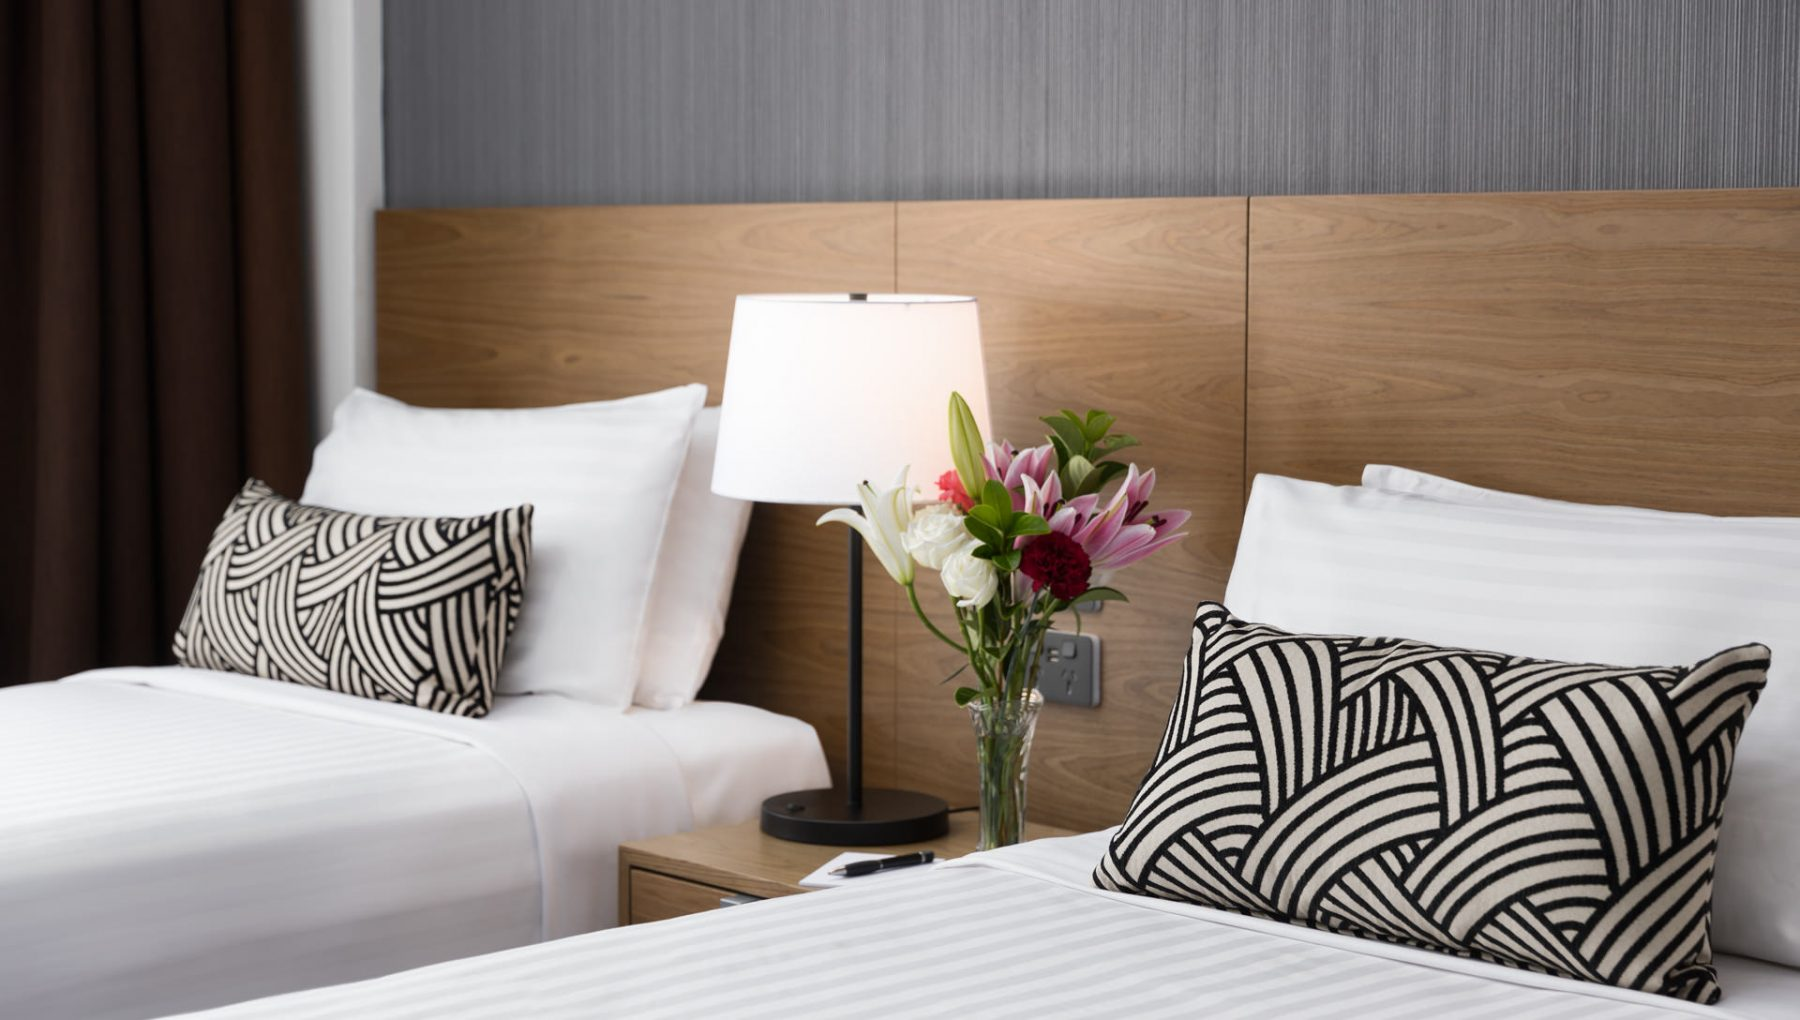 Rydges Camperdown - Plait Black Cushions by HotelHome